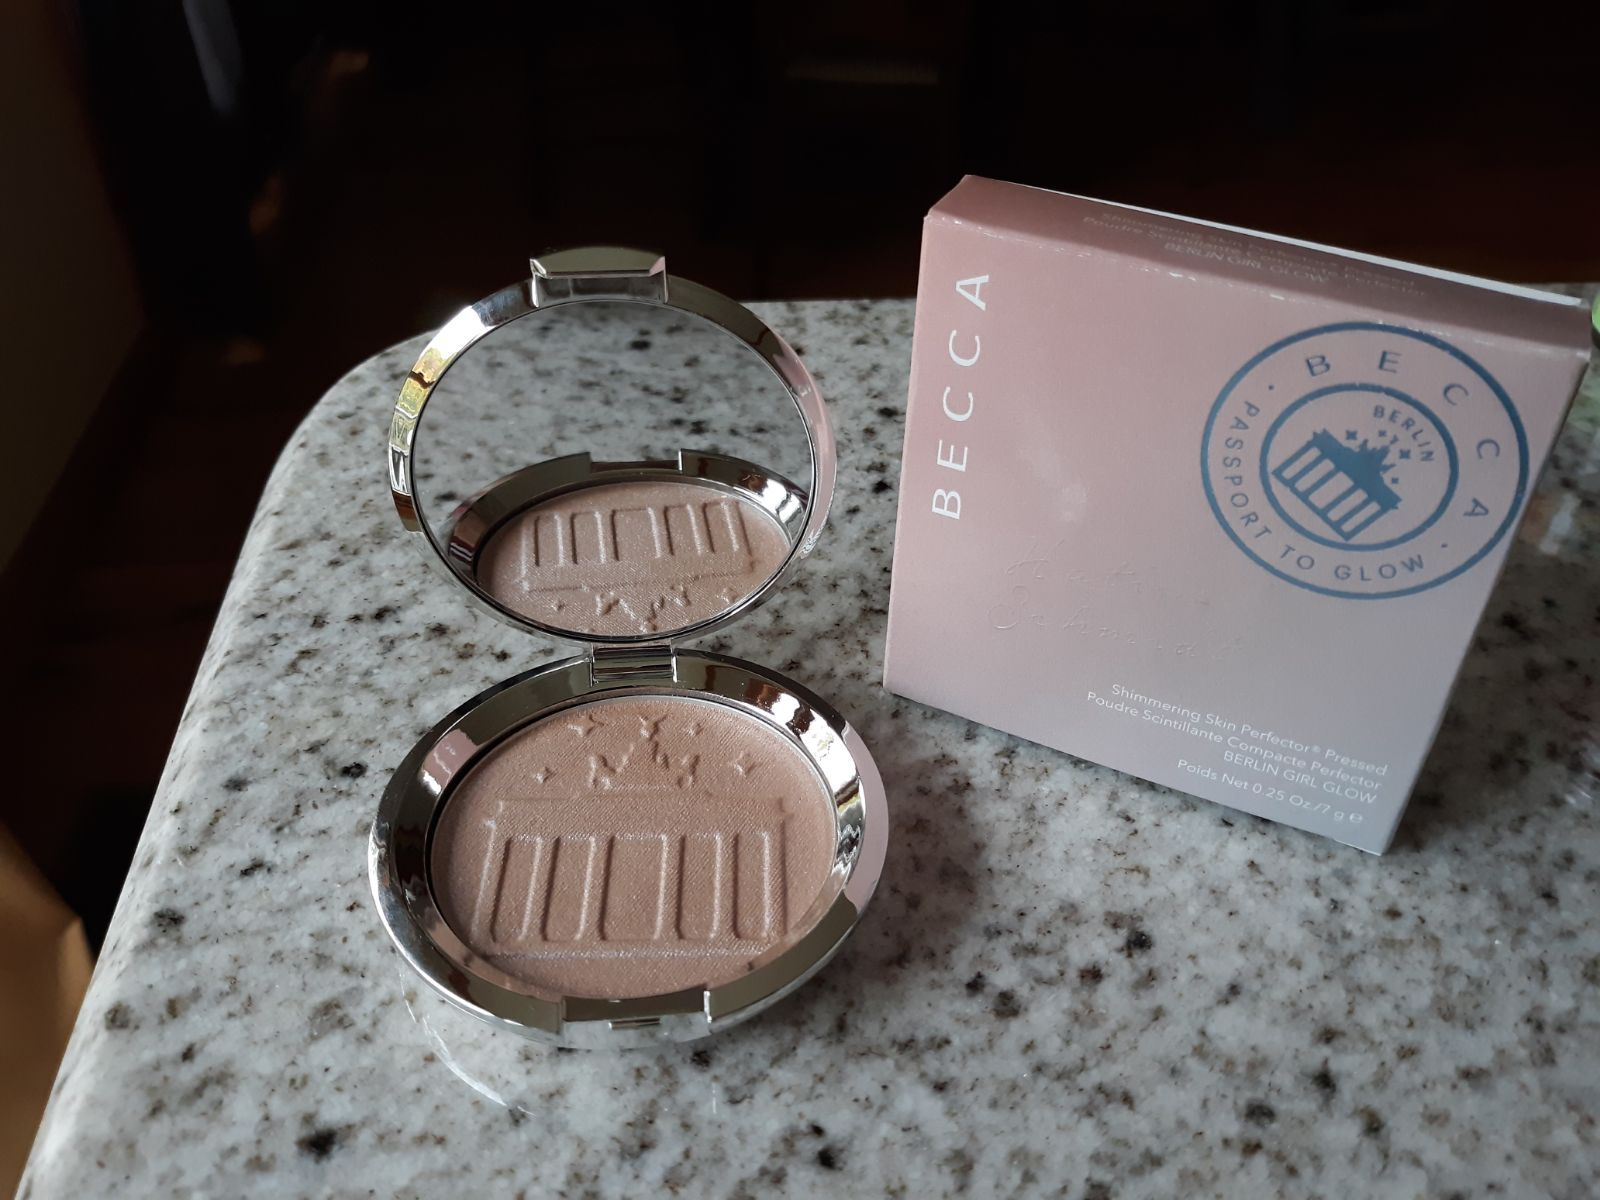 Becca X Hatice Shimmering Skin Perfector Pressed Highlighter Berlin Girl Glow Cool Honey Shade With Light Shifting Pink Blu Becca Cosmetics Blue Pearl Becca